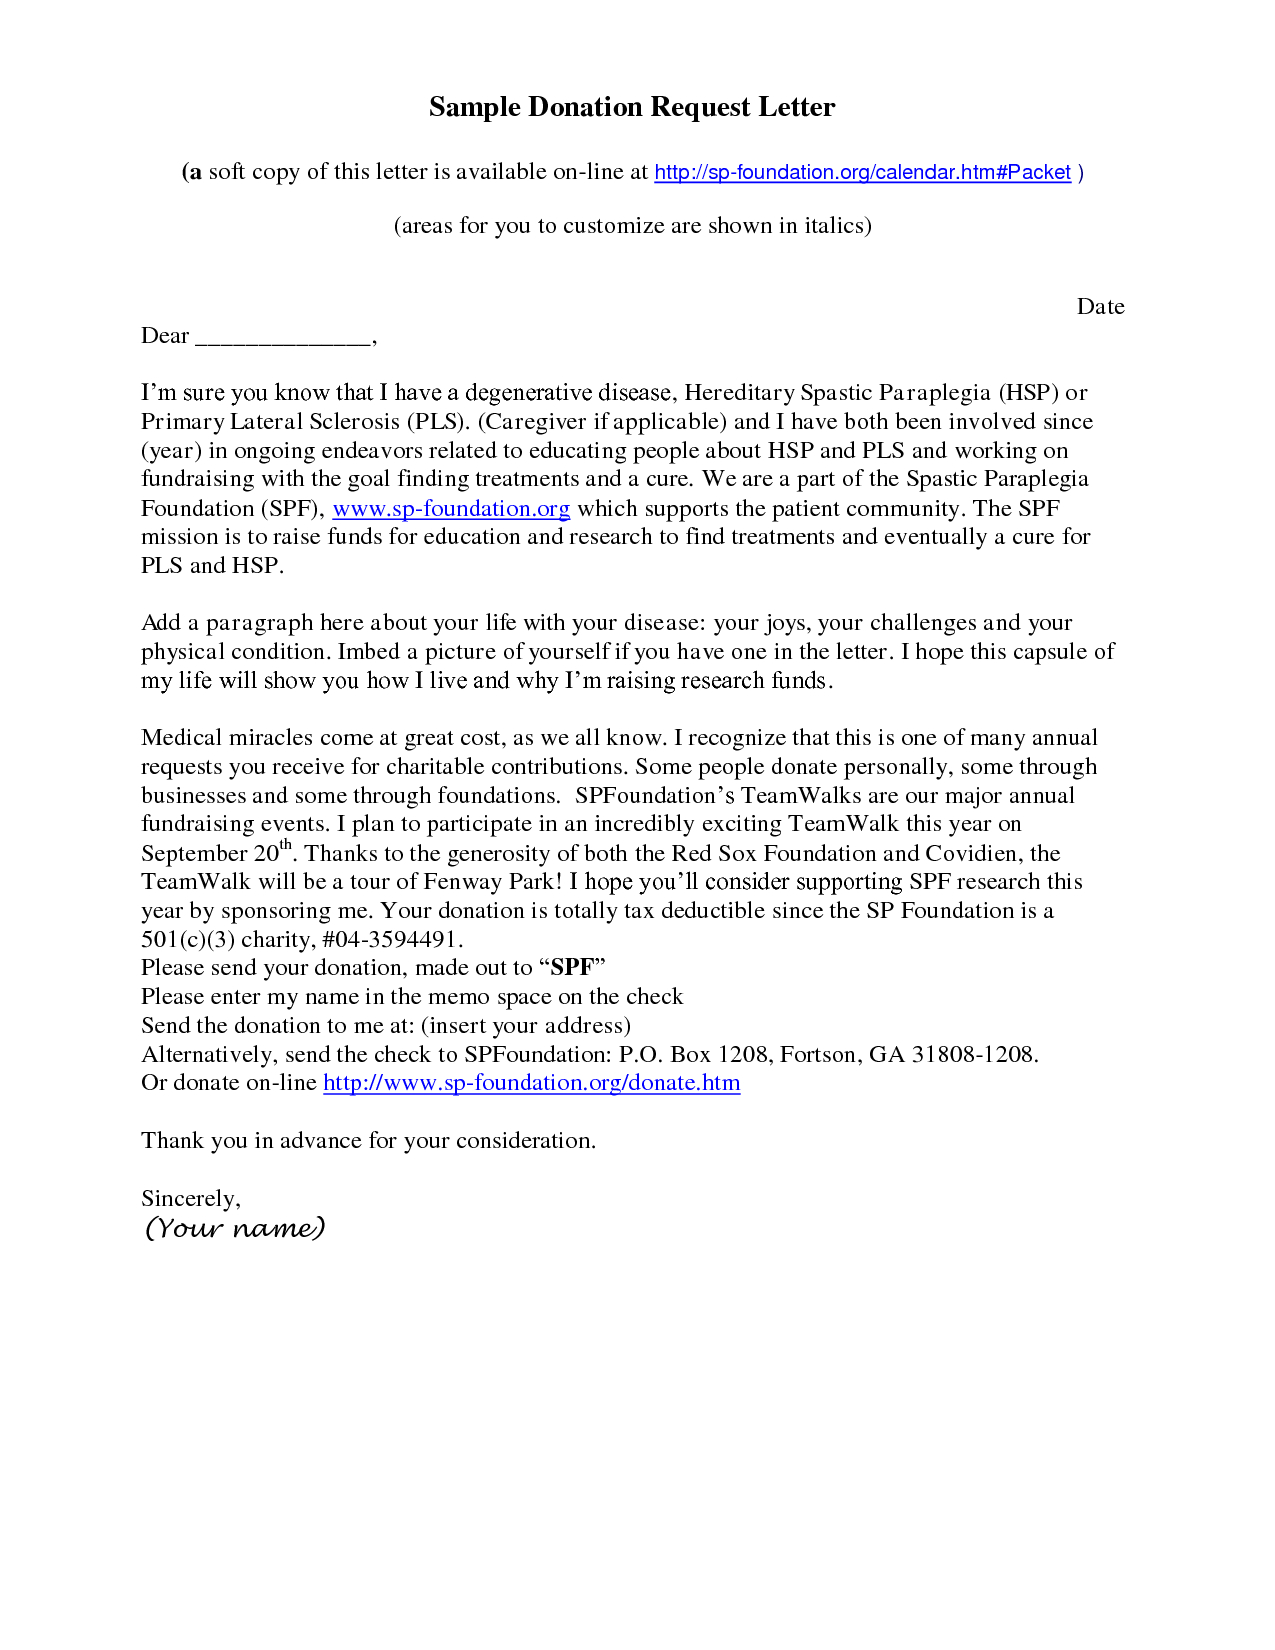 Request for Donations Letter Template Free - How to Write A solicitation Letter for Donations Choice Image